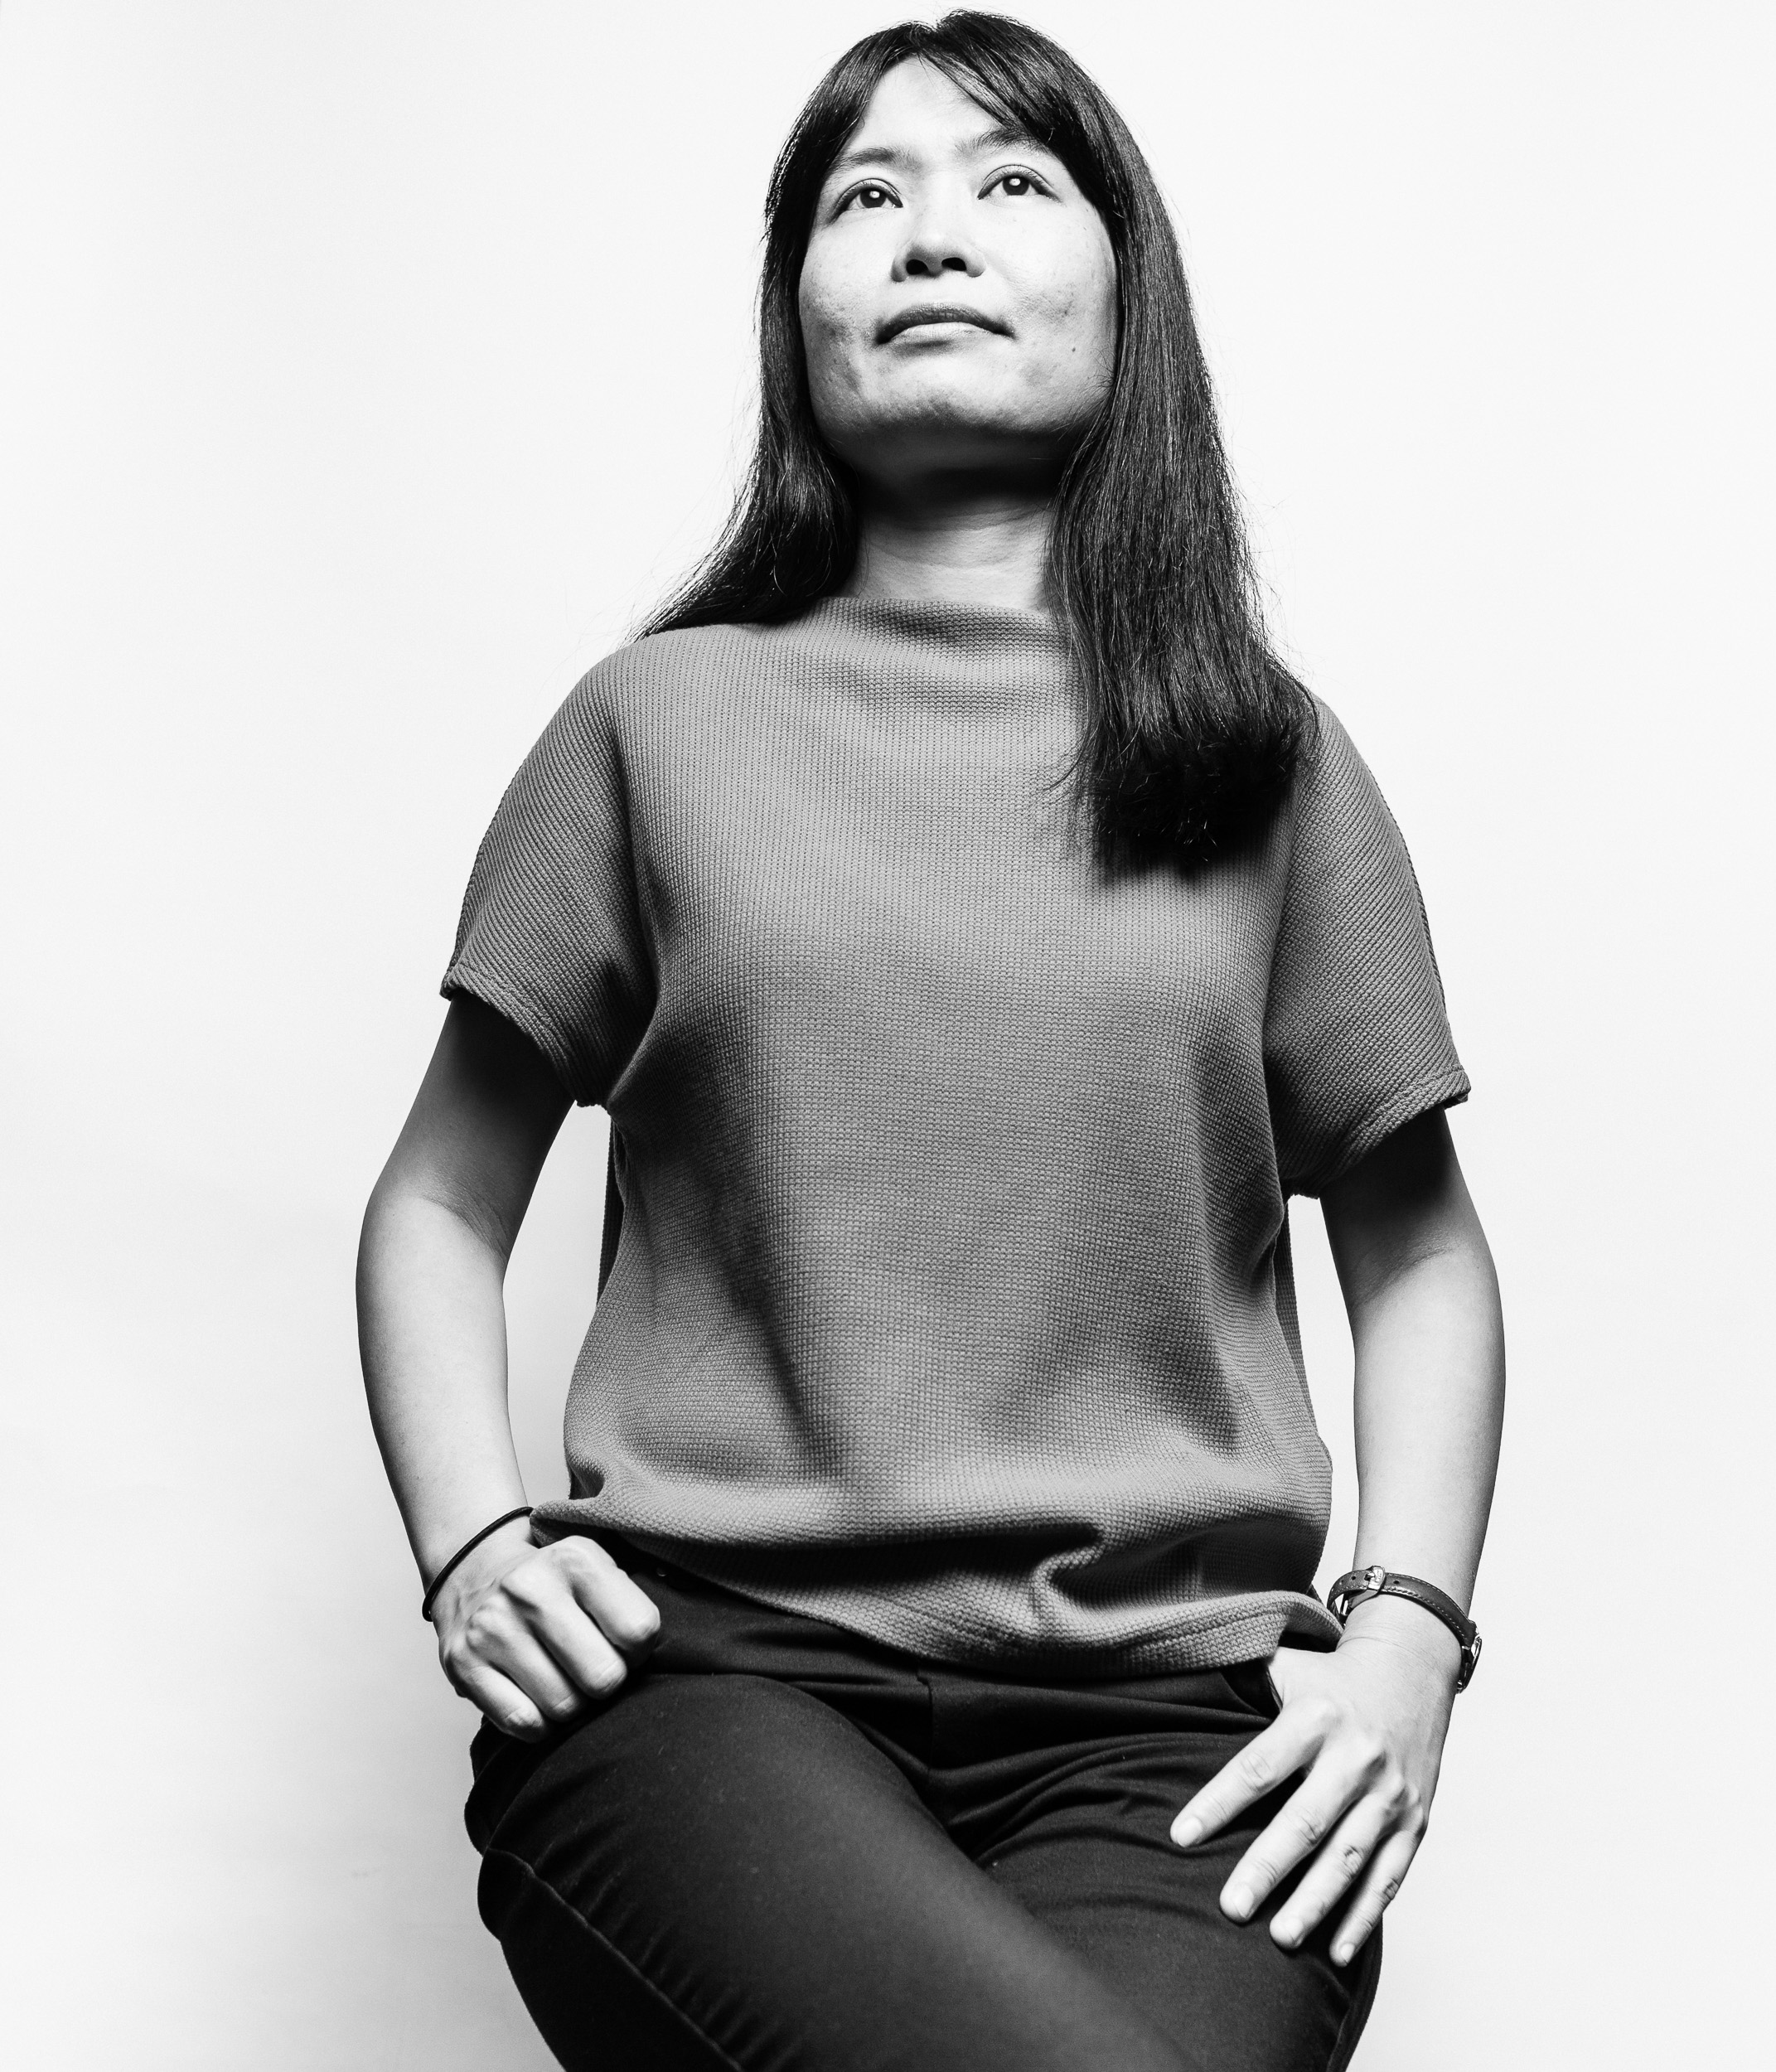 singapore-commercial-editorial-photographer-journalism-asia-ajf-03.jpg